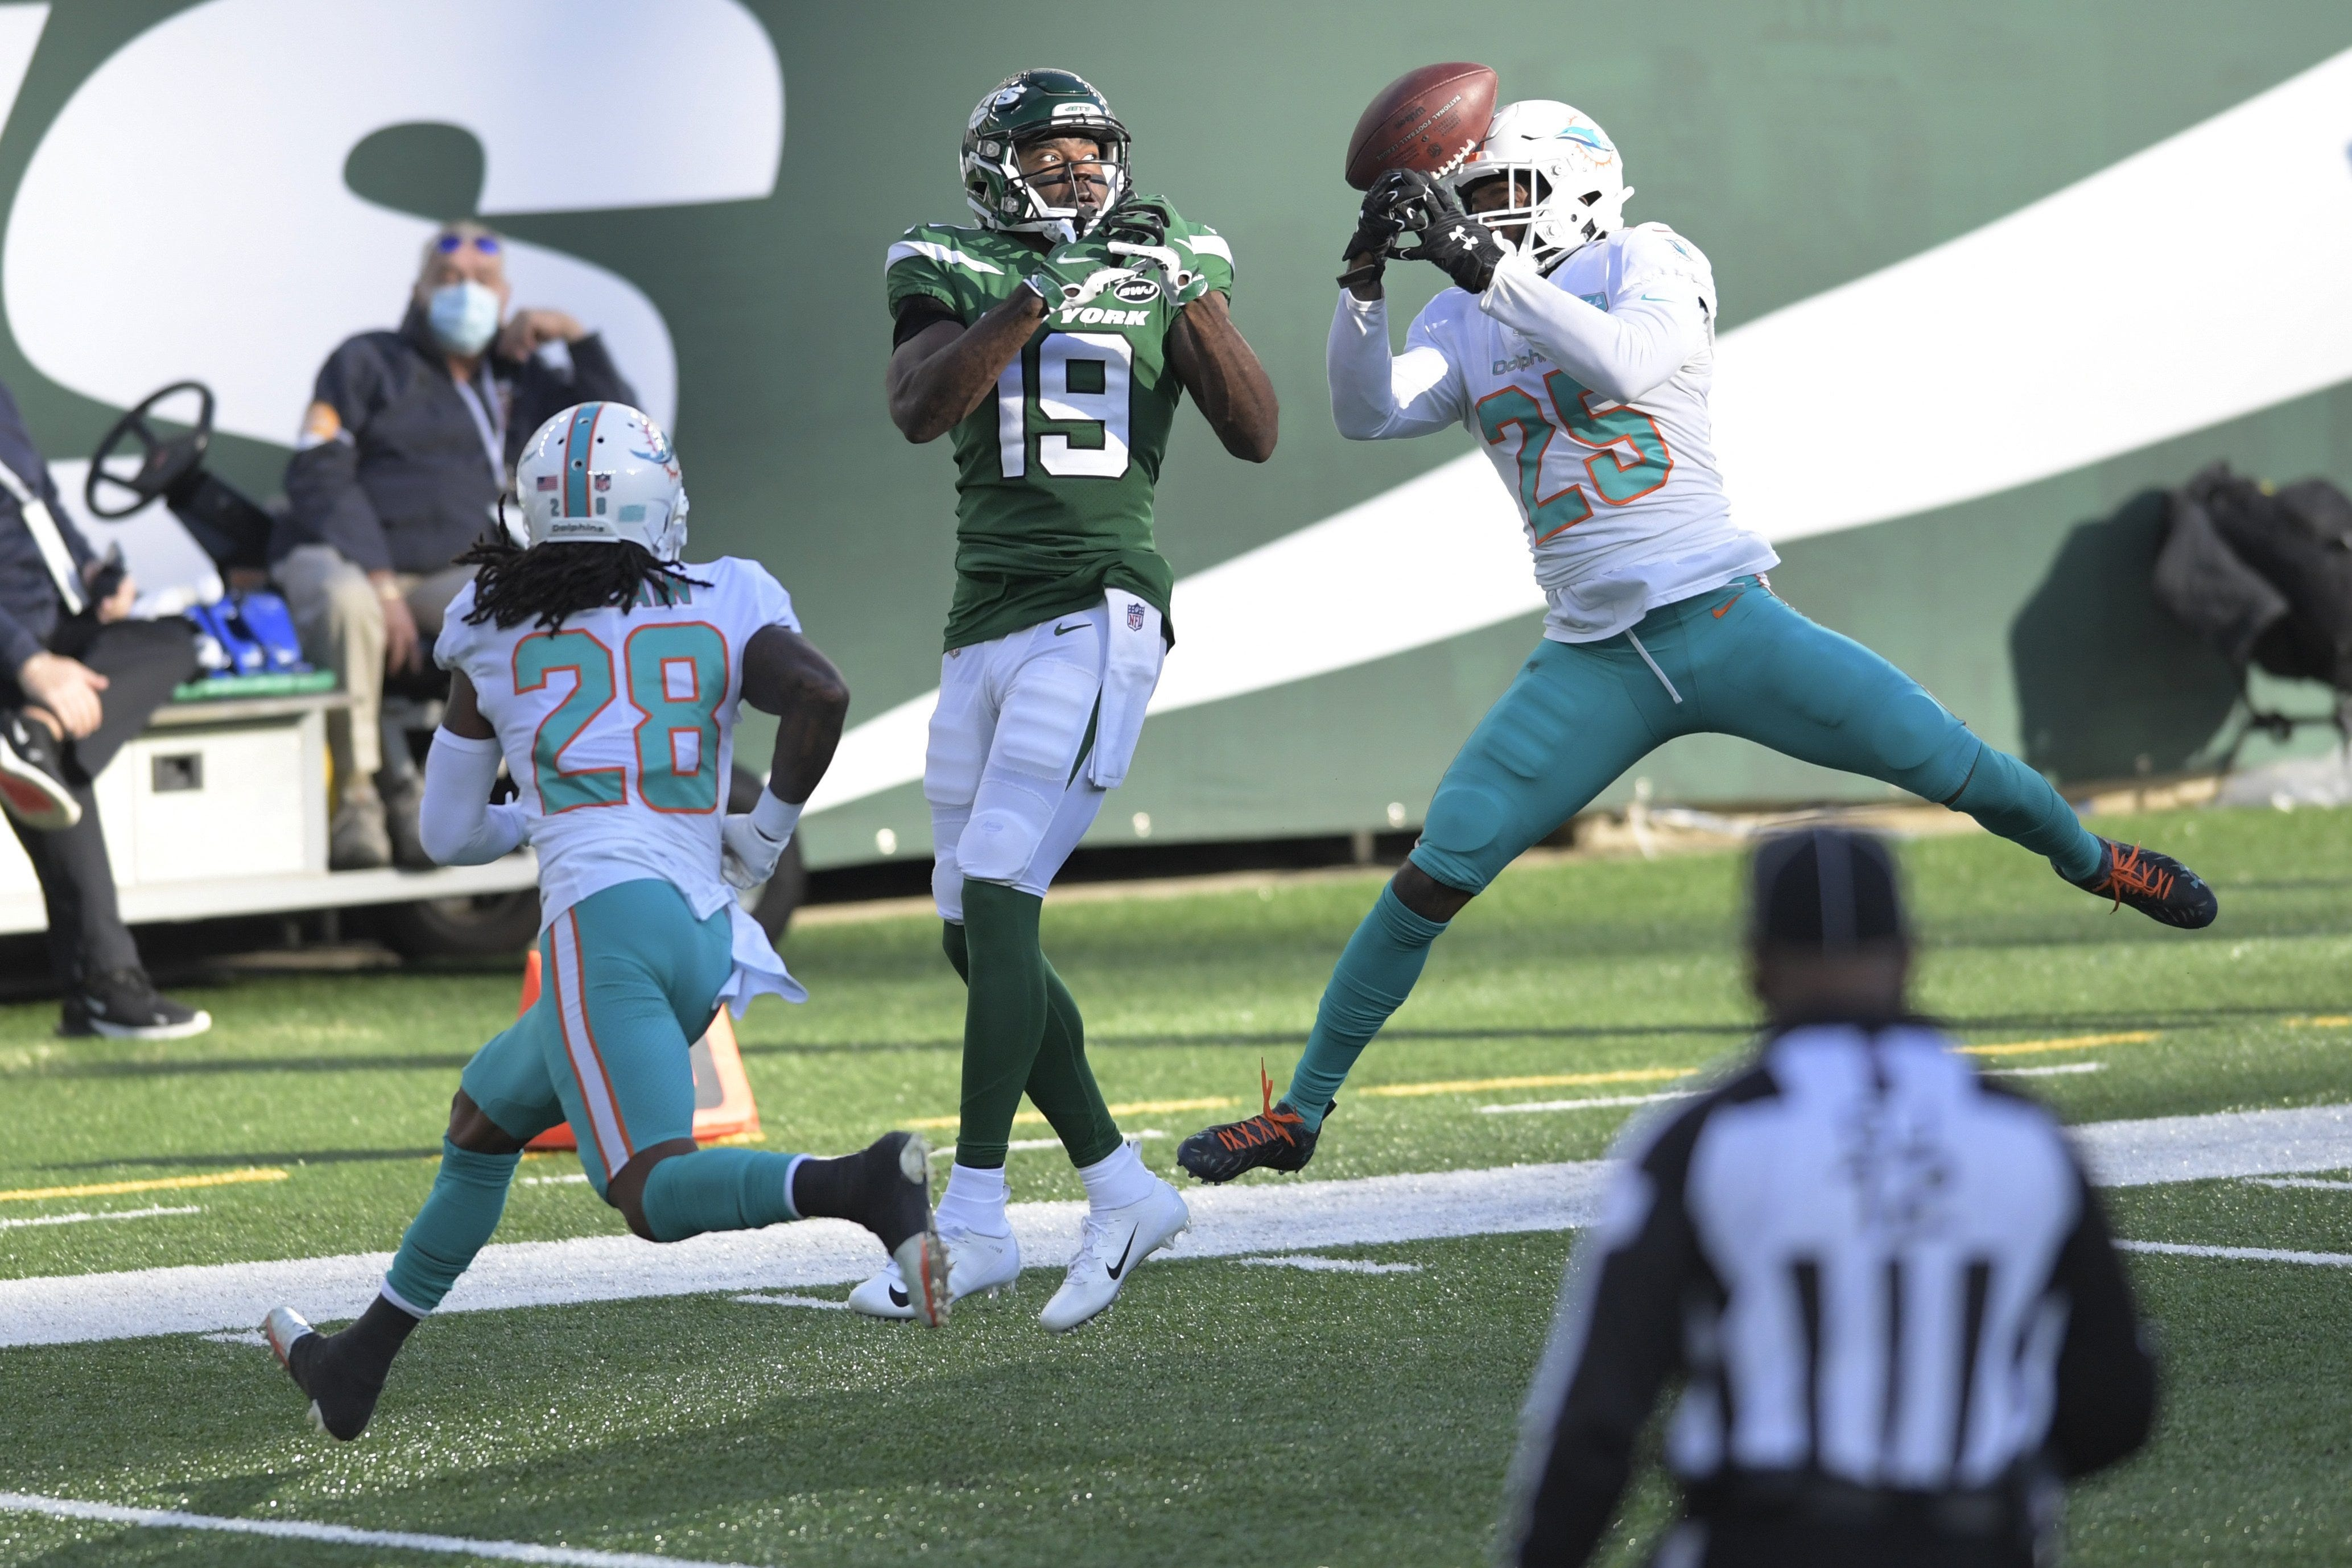 The Tape Don T Lie Miami Dolphins Xavien Howard Beat Jets A Review Software developer, armchair astronomer w/ ancient caltech degree, picking stick player and luna lee fan. the tape don t lie miami dolphins